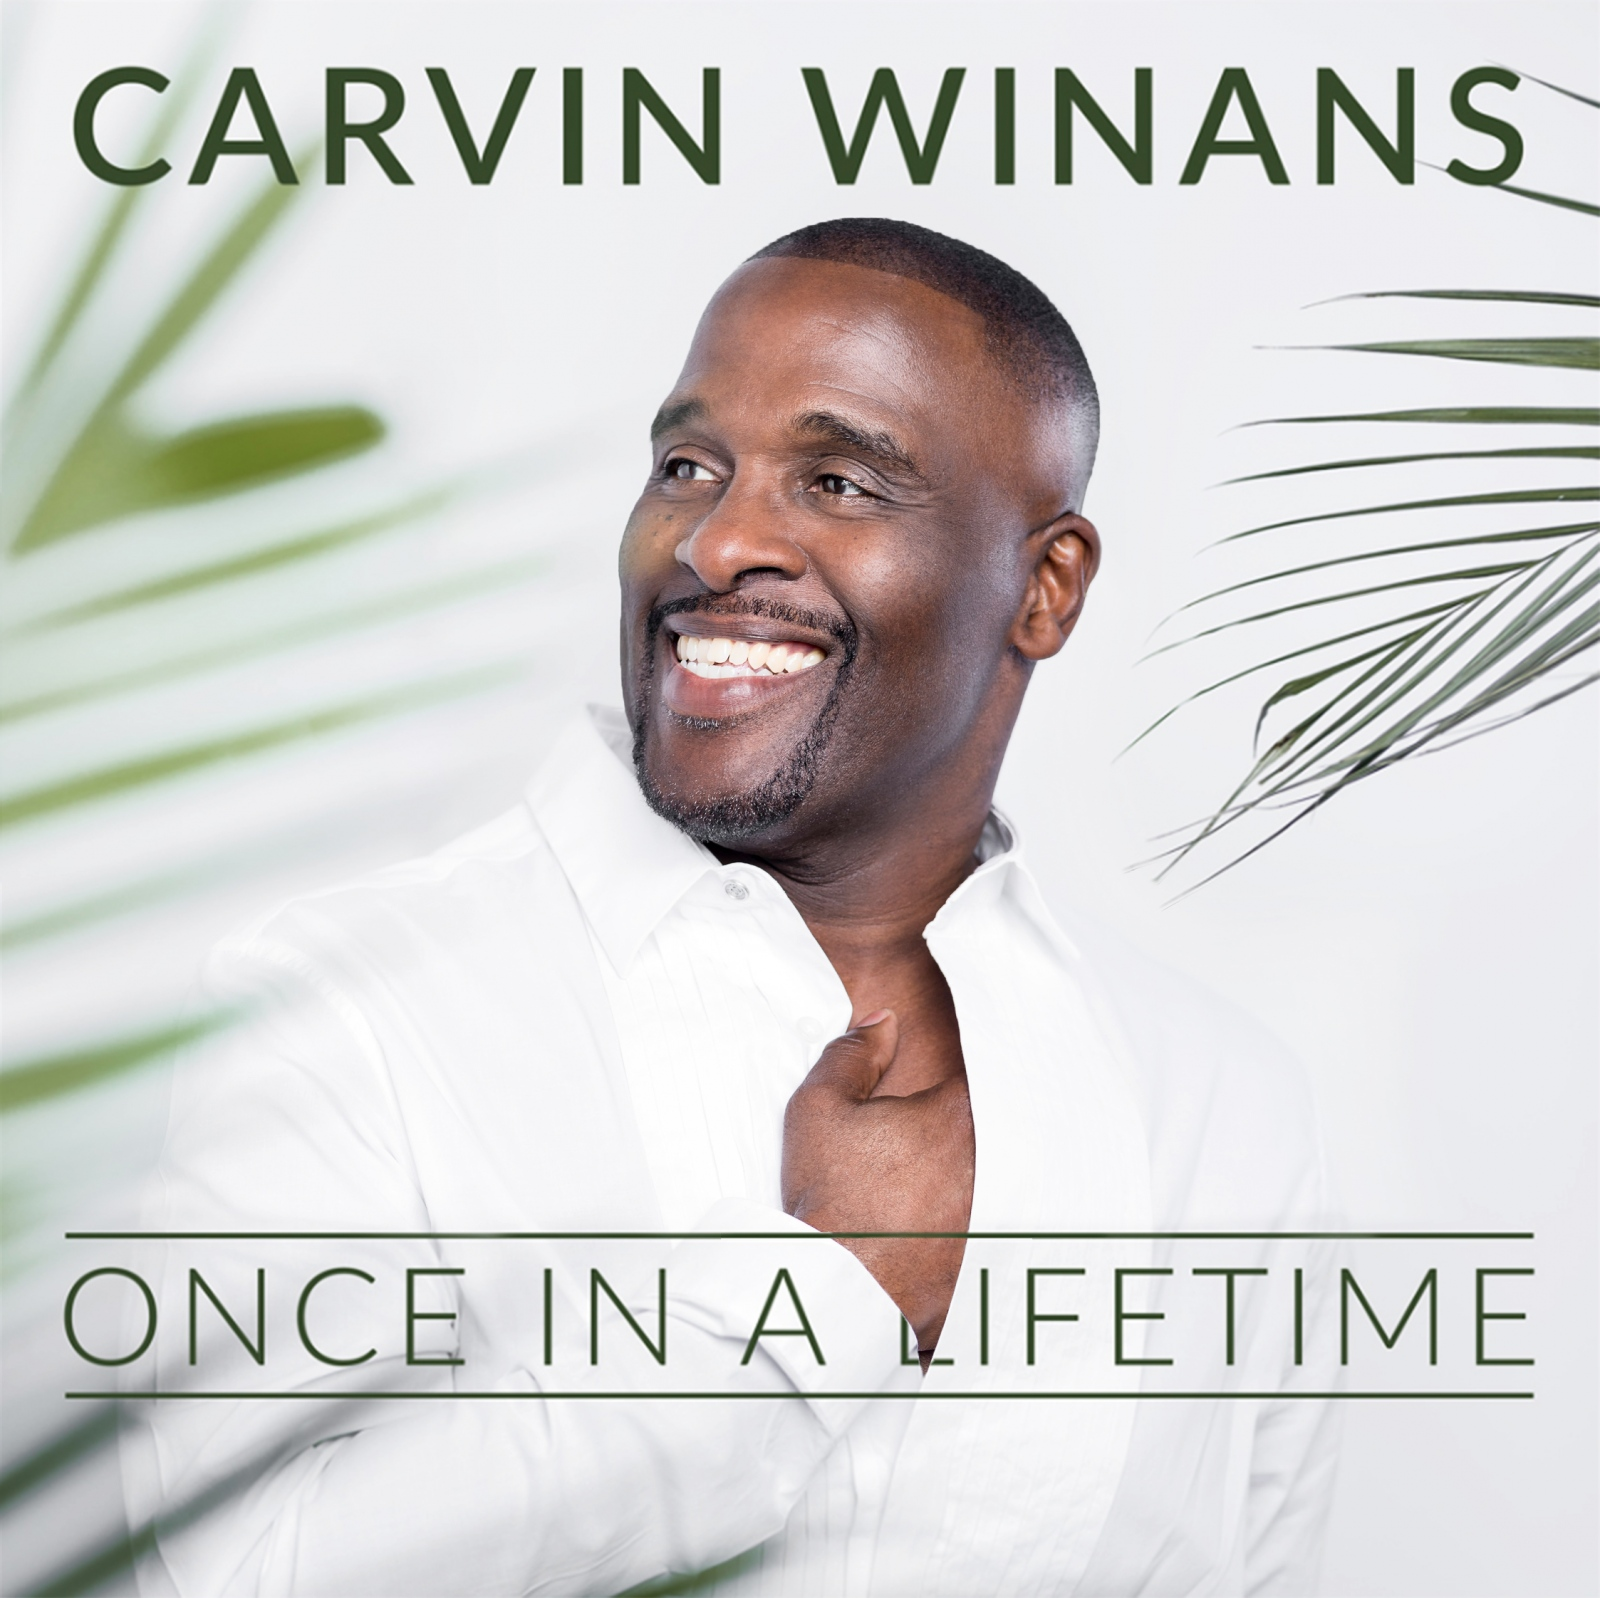 Photography image - Loading Carvin_Winans_Single_Photographer_Robin_Gartner.jpg